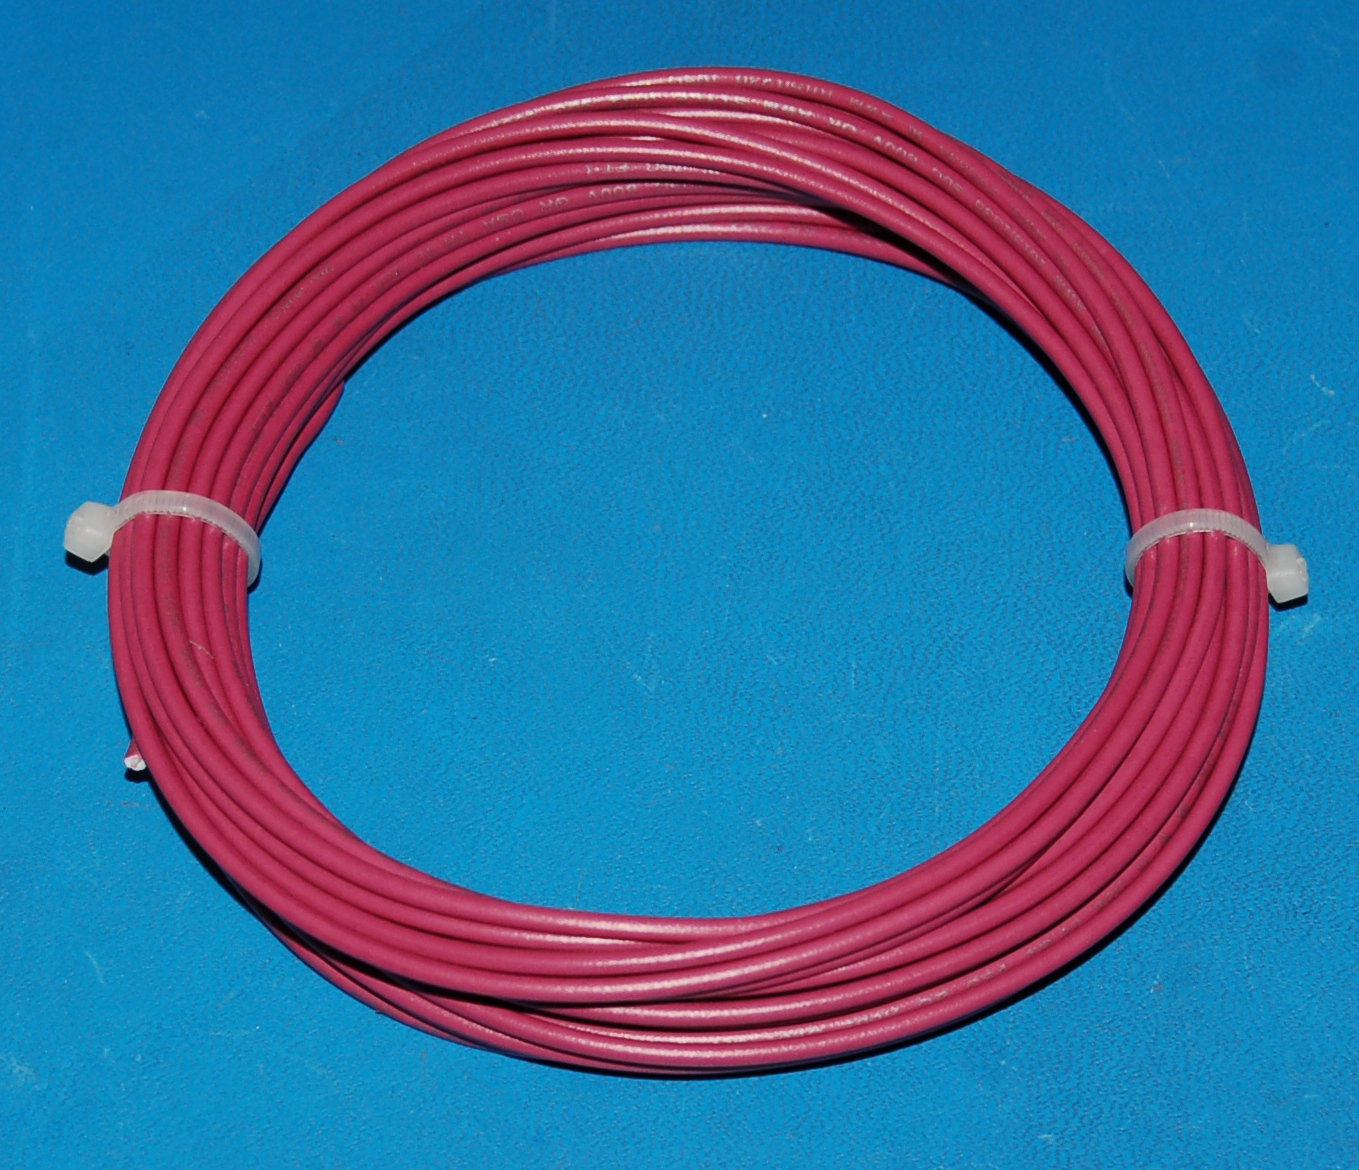 Solid Tinned Copper Wire, 600V, #20 AWG x 25' (Purple)